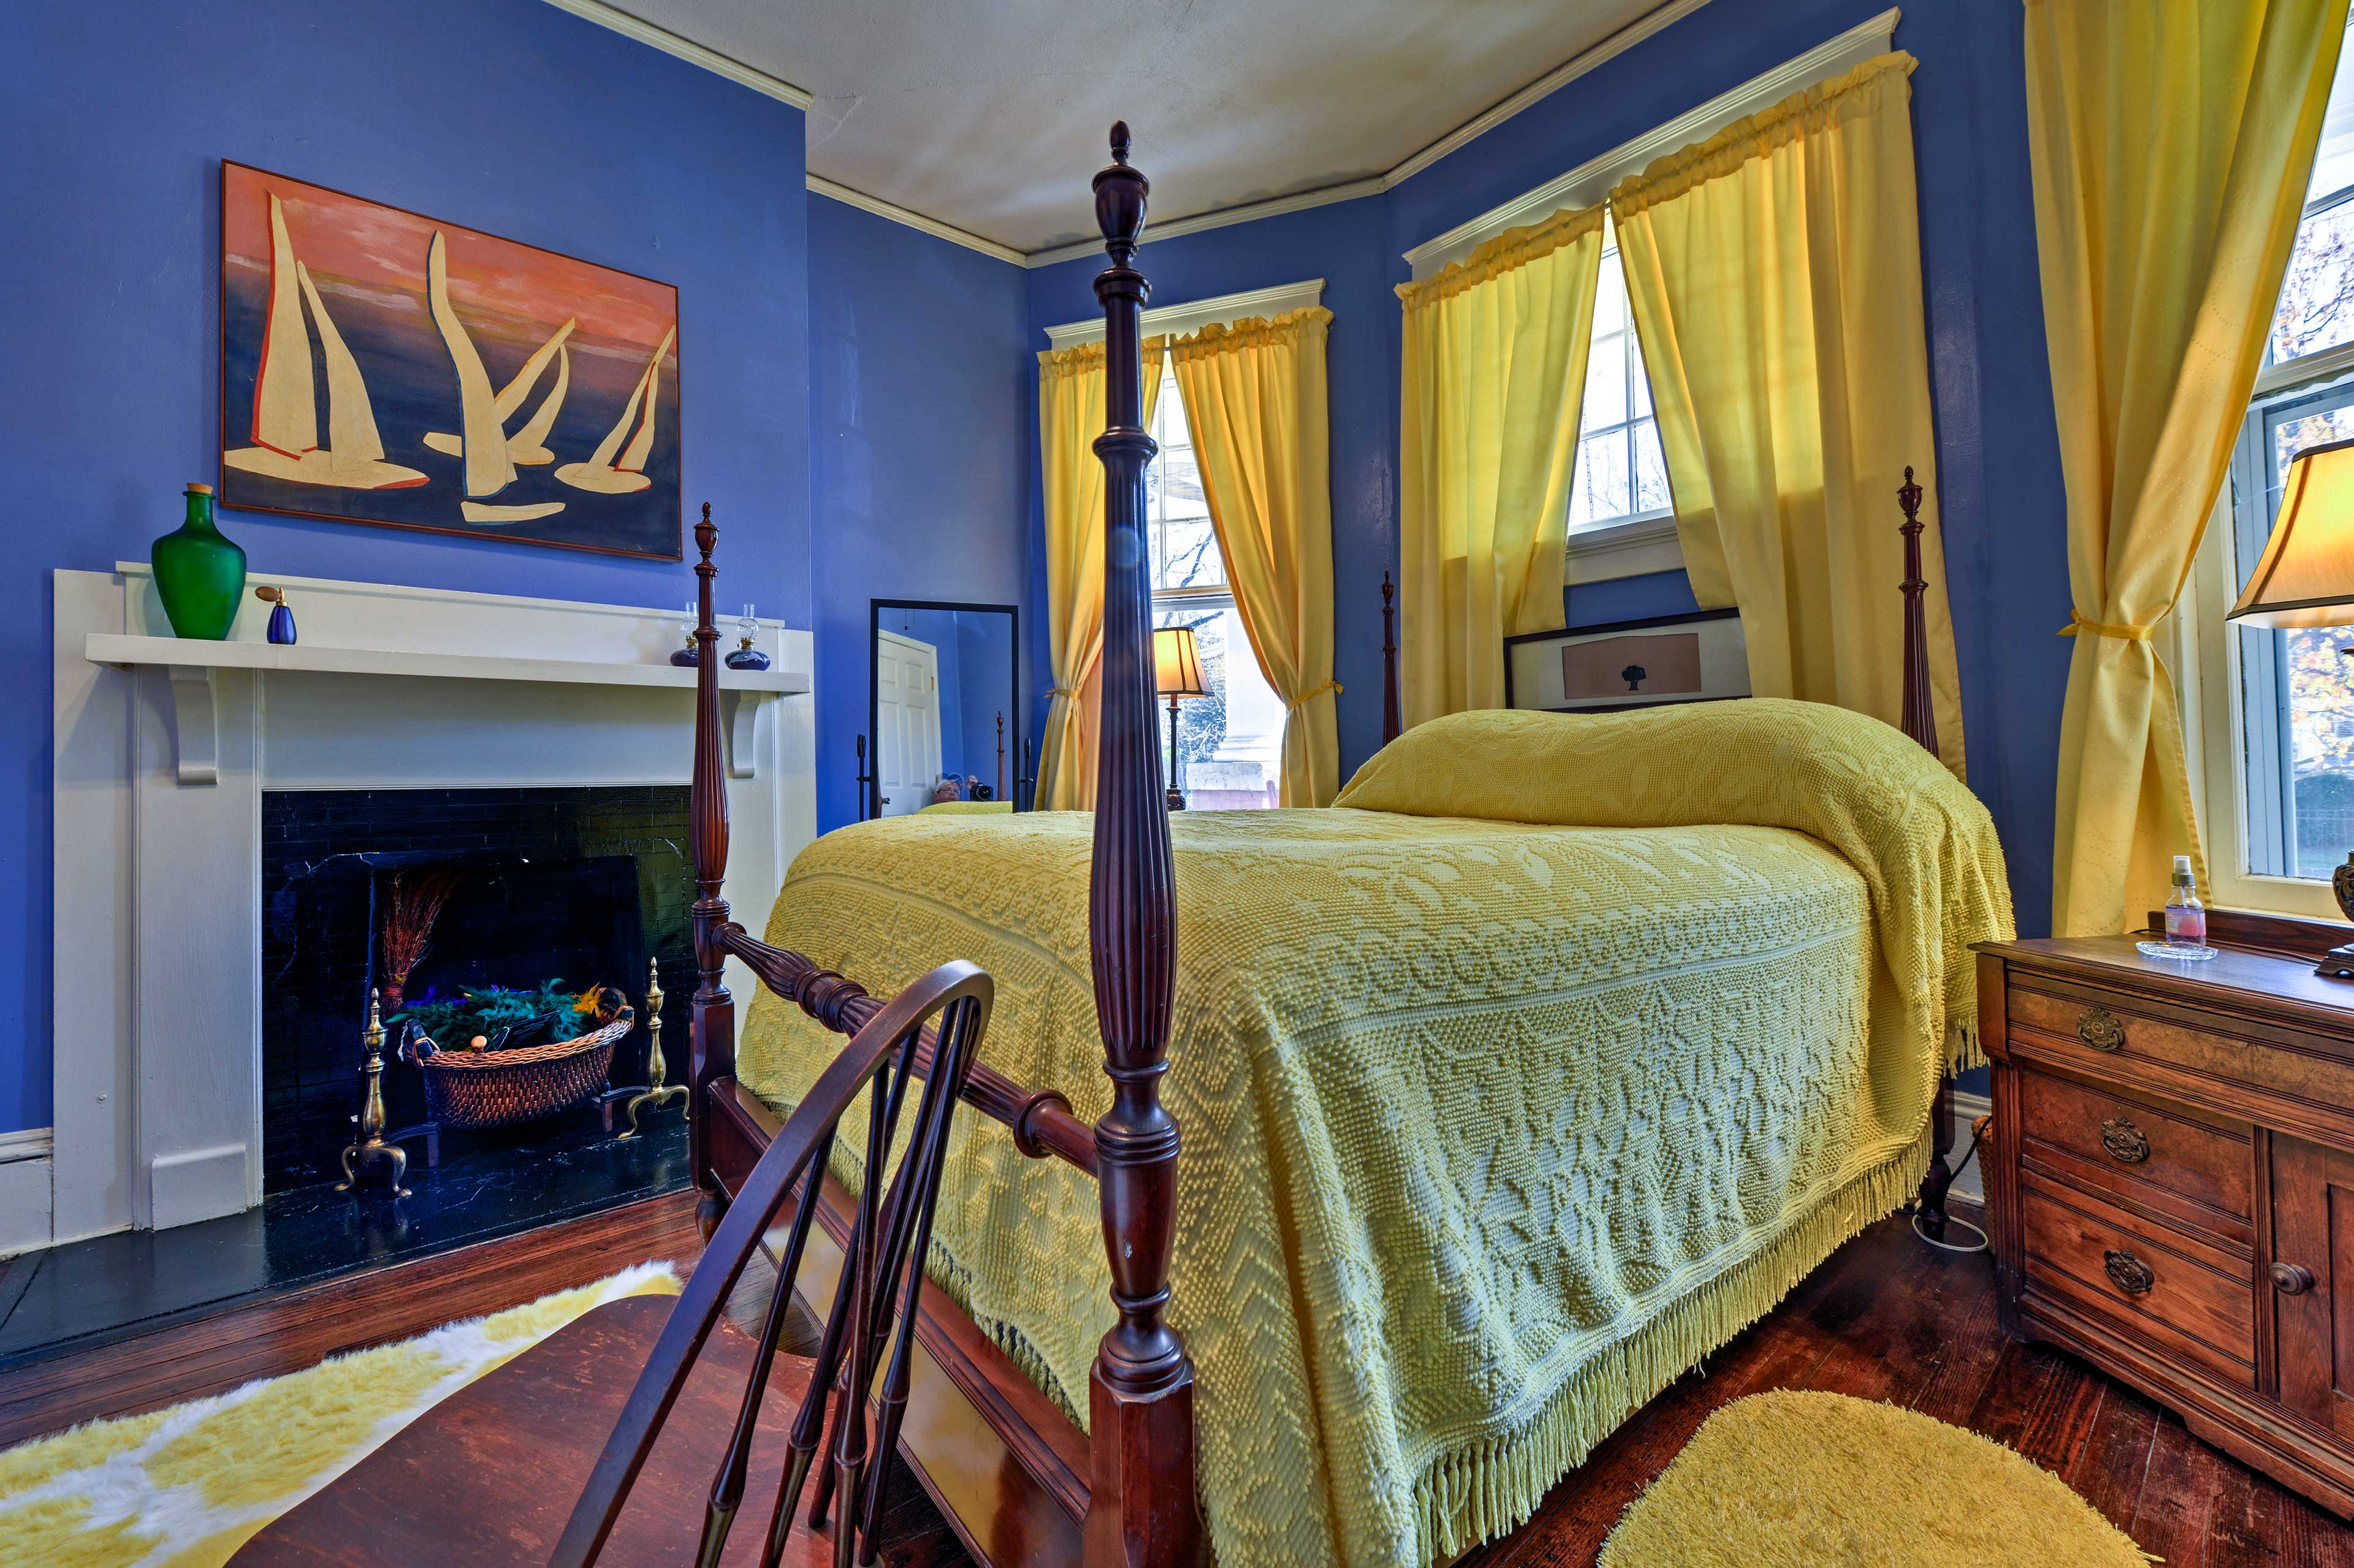 Primary blues and yellows decorate the master bedroom.